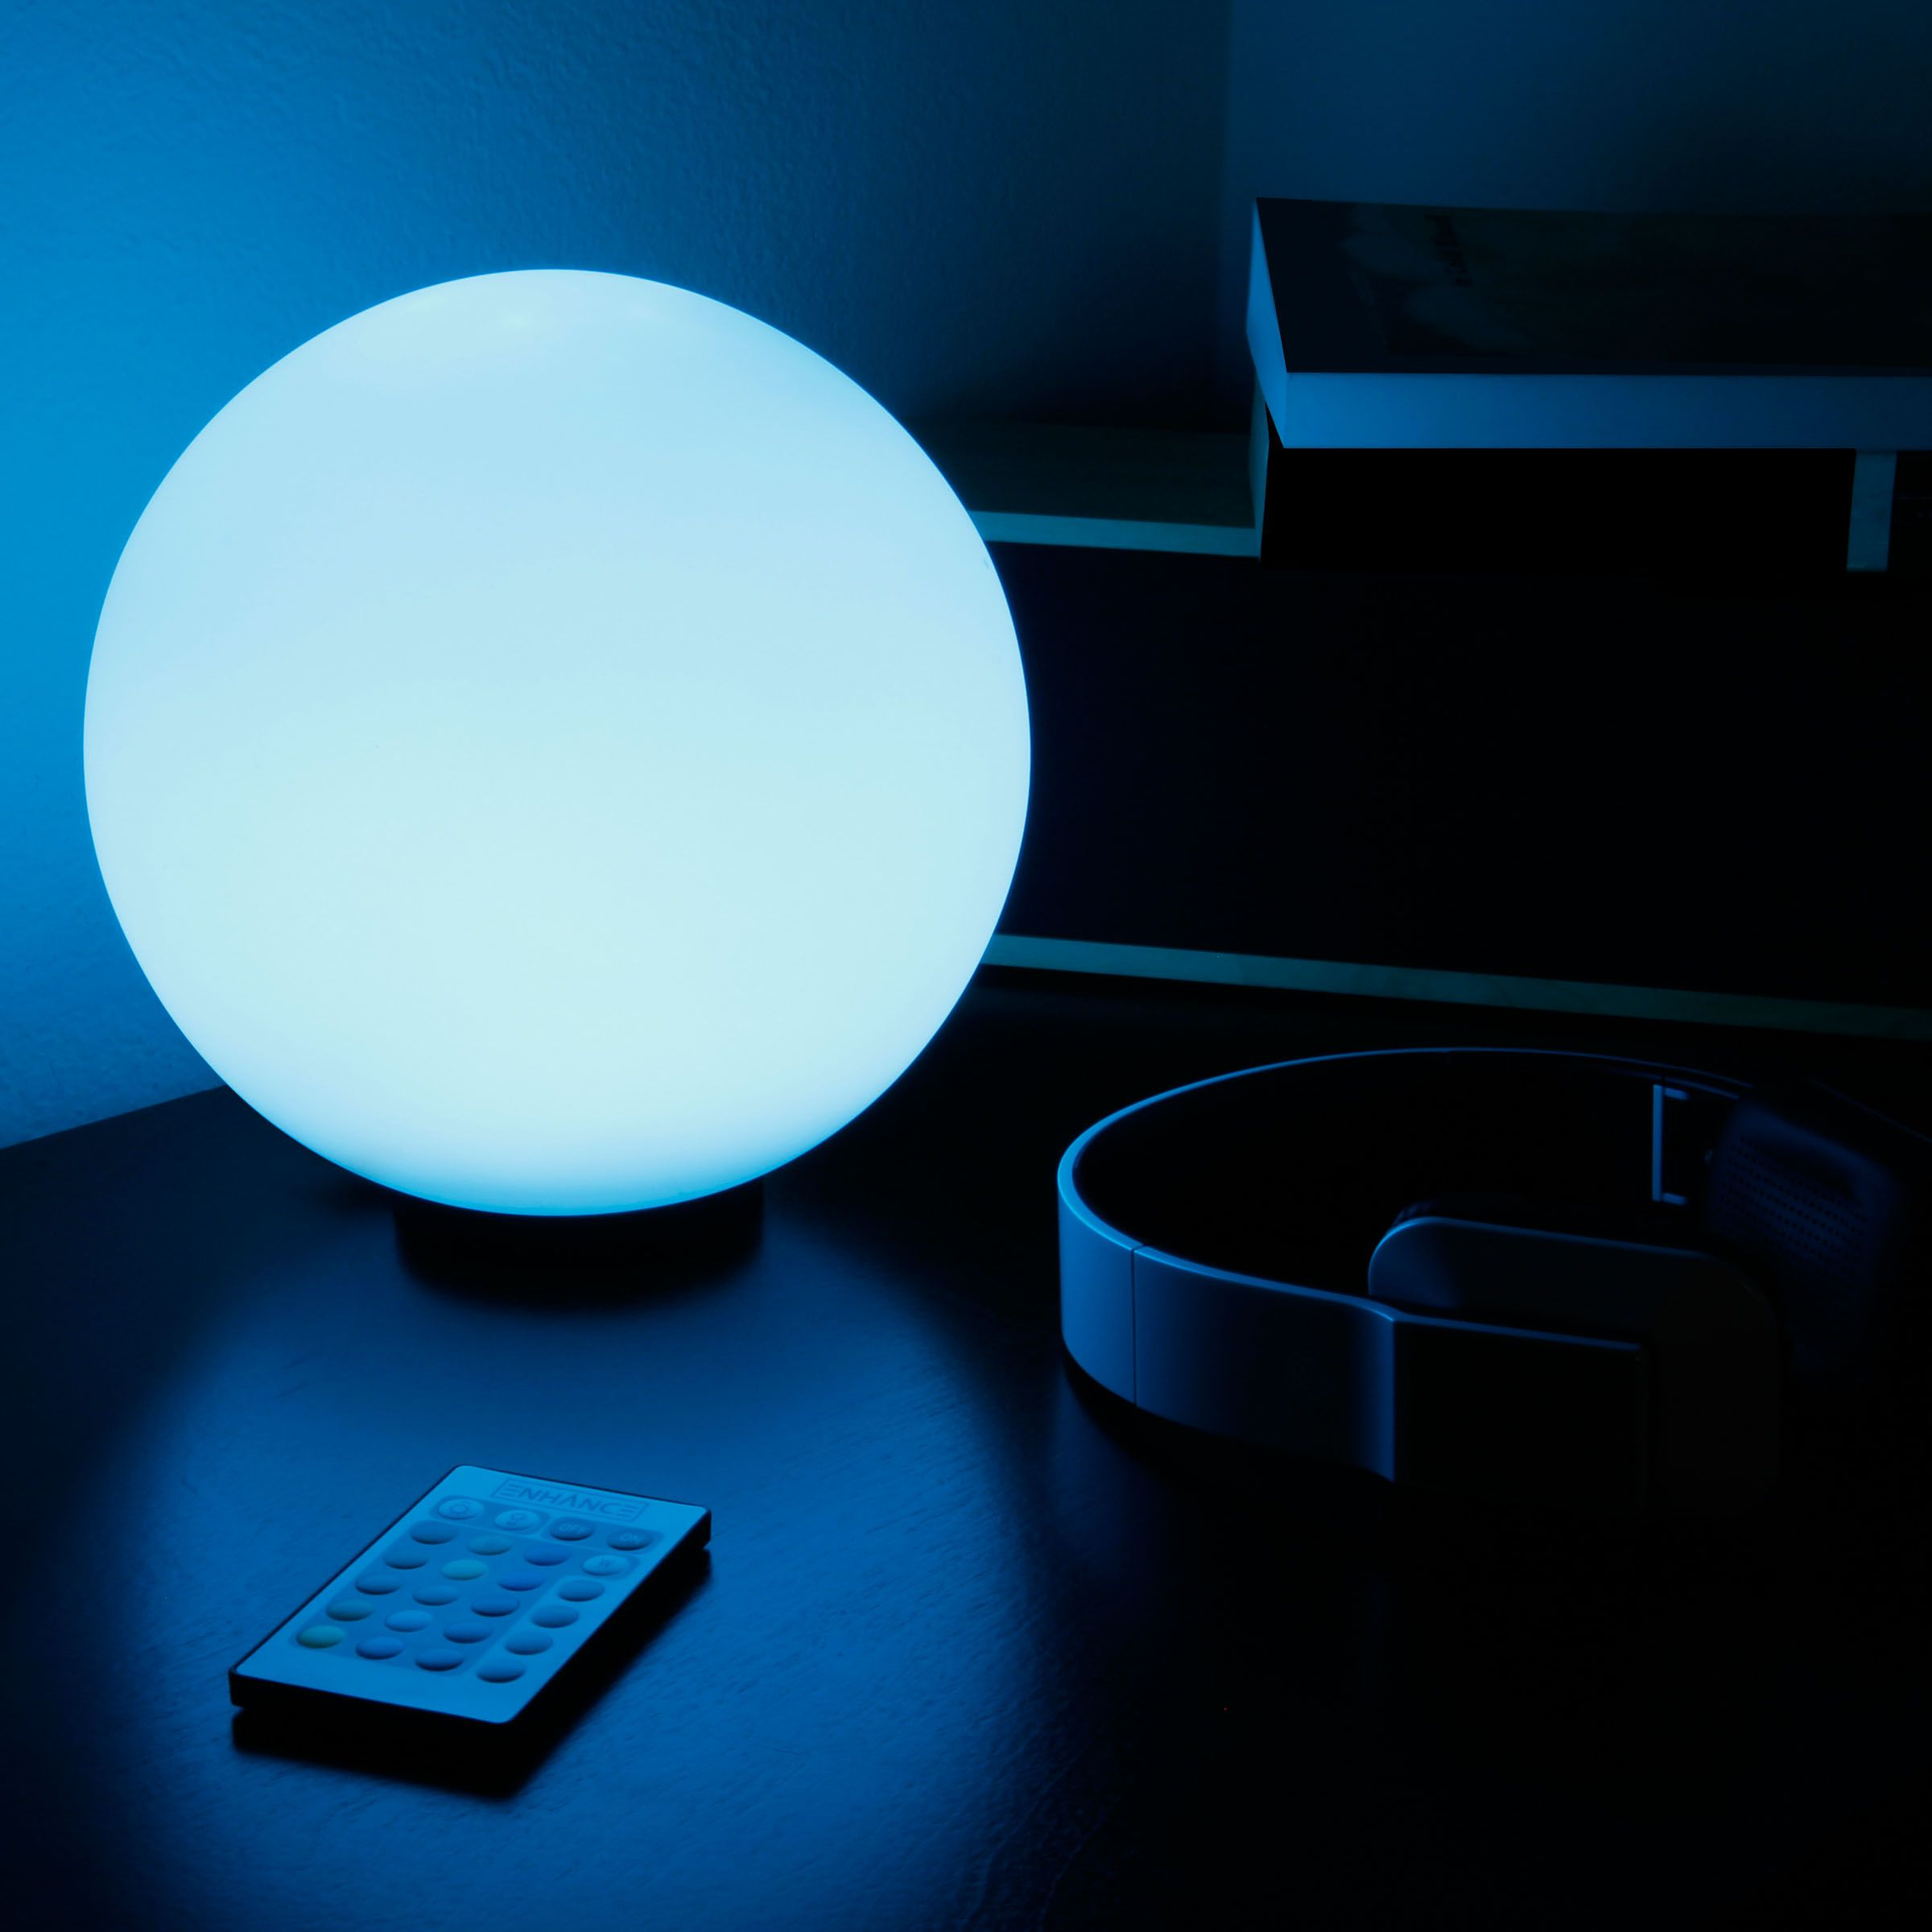 Childrens colour changing lights - Children S Led Color Changing Mood Lamp Night Light With Wireless Remote Control 4 Lighting Modes Battery Or Ac Adapter Power By Enhance Perfect For